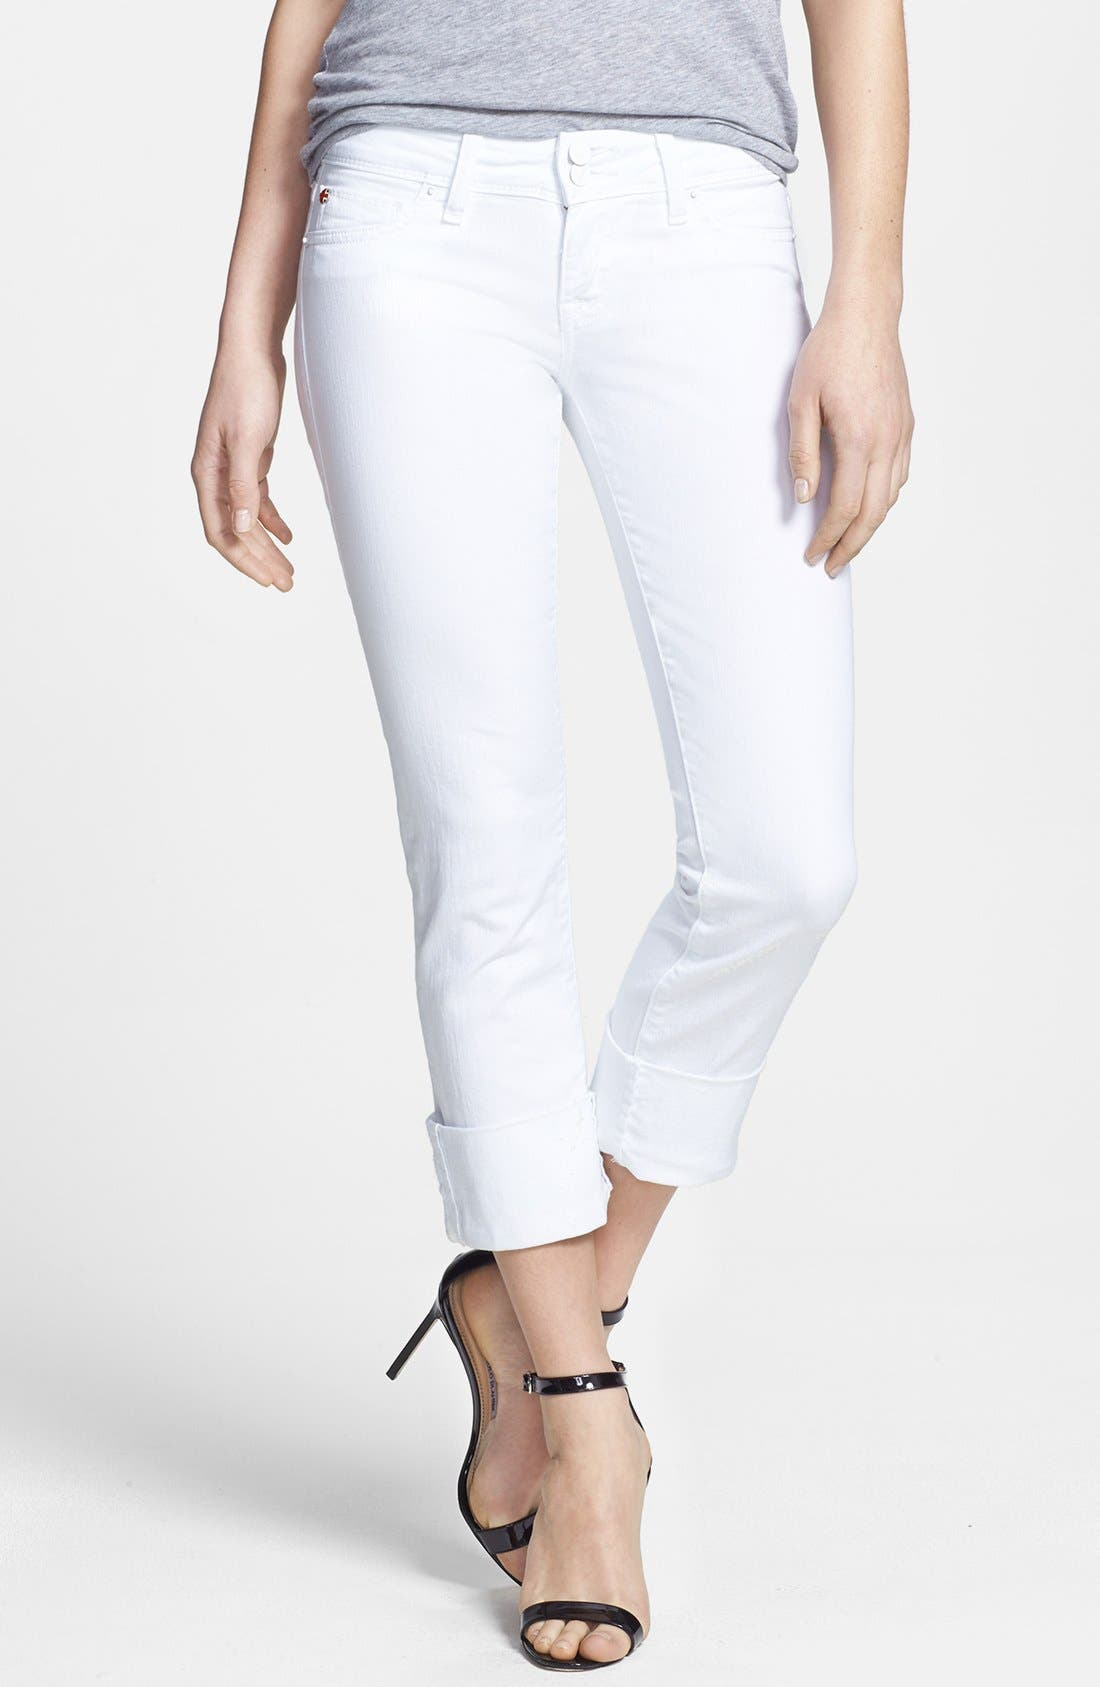 Alternate Image 1 Selected - Hudson Jeans 'Ginny Crop' Stretch Skinny Jeans (White)